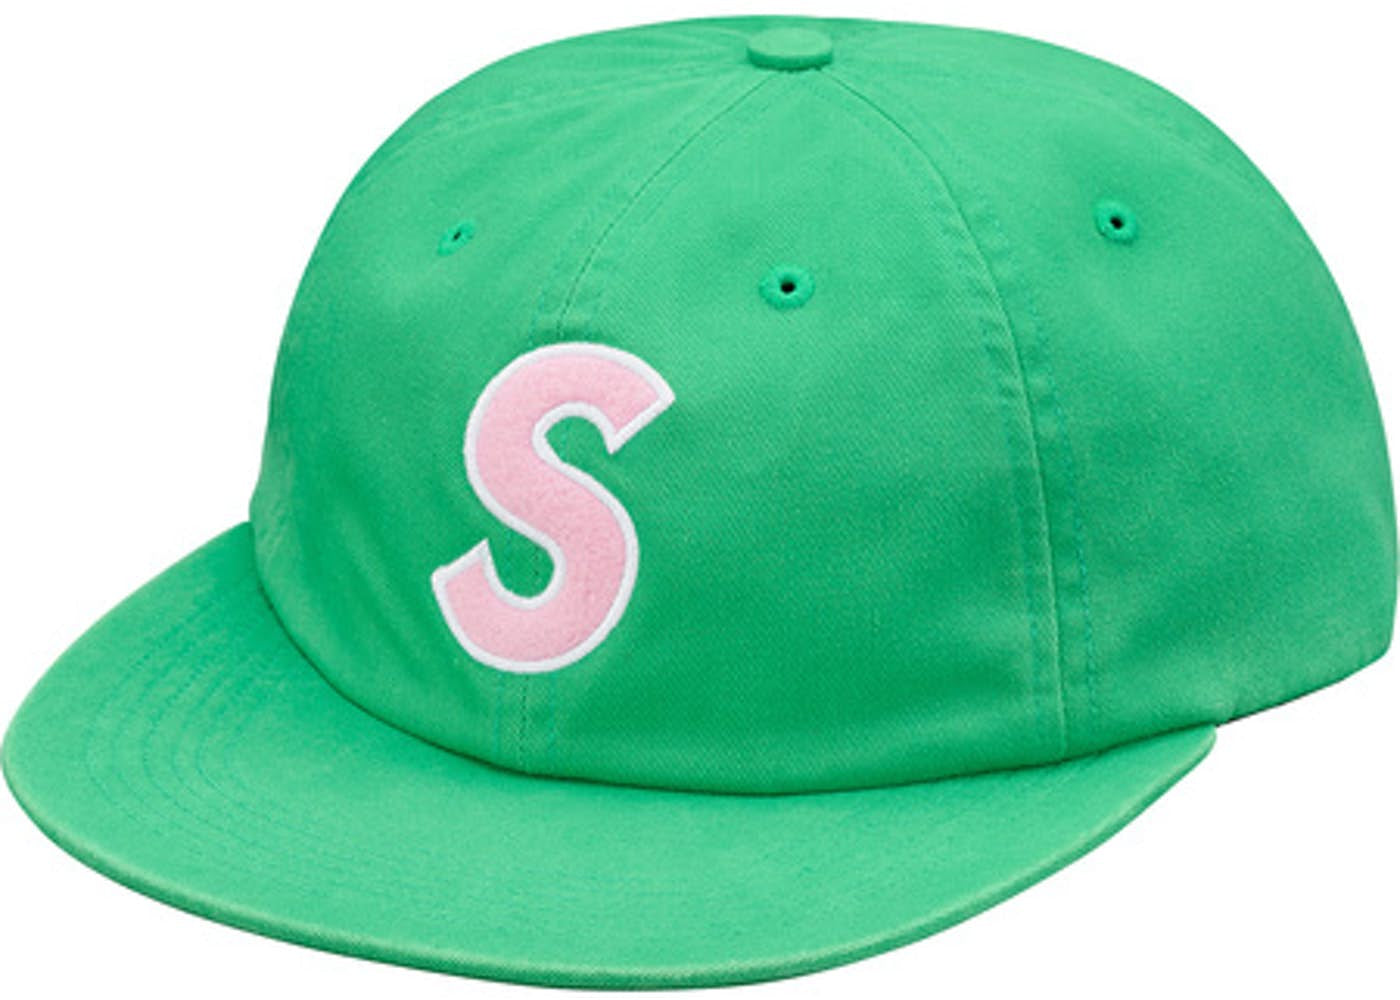 SUPREME S LOGO FELT 6-PANEL GREEN